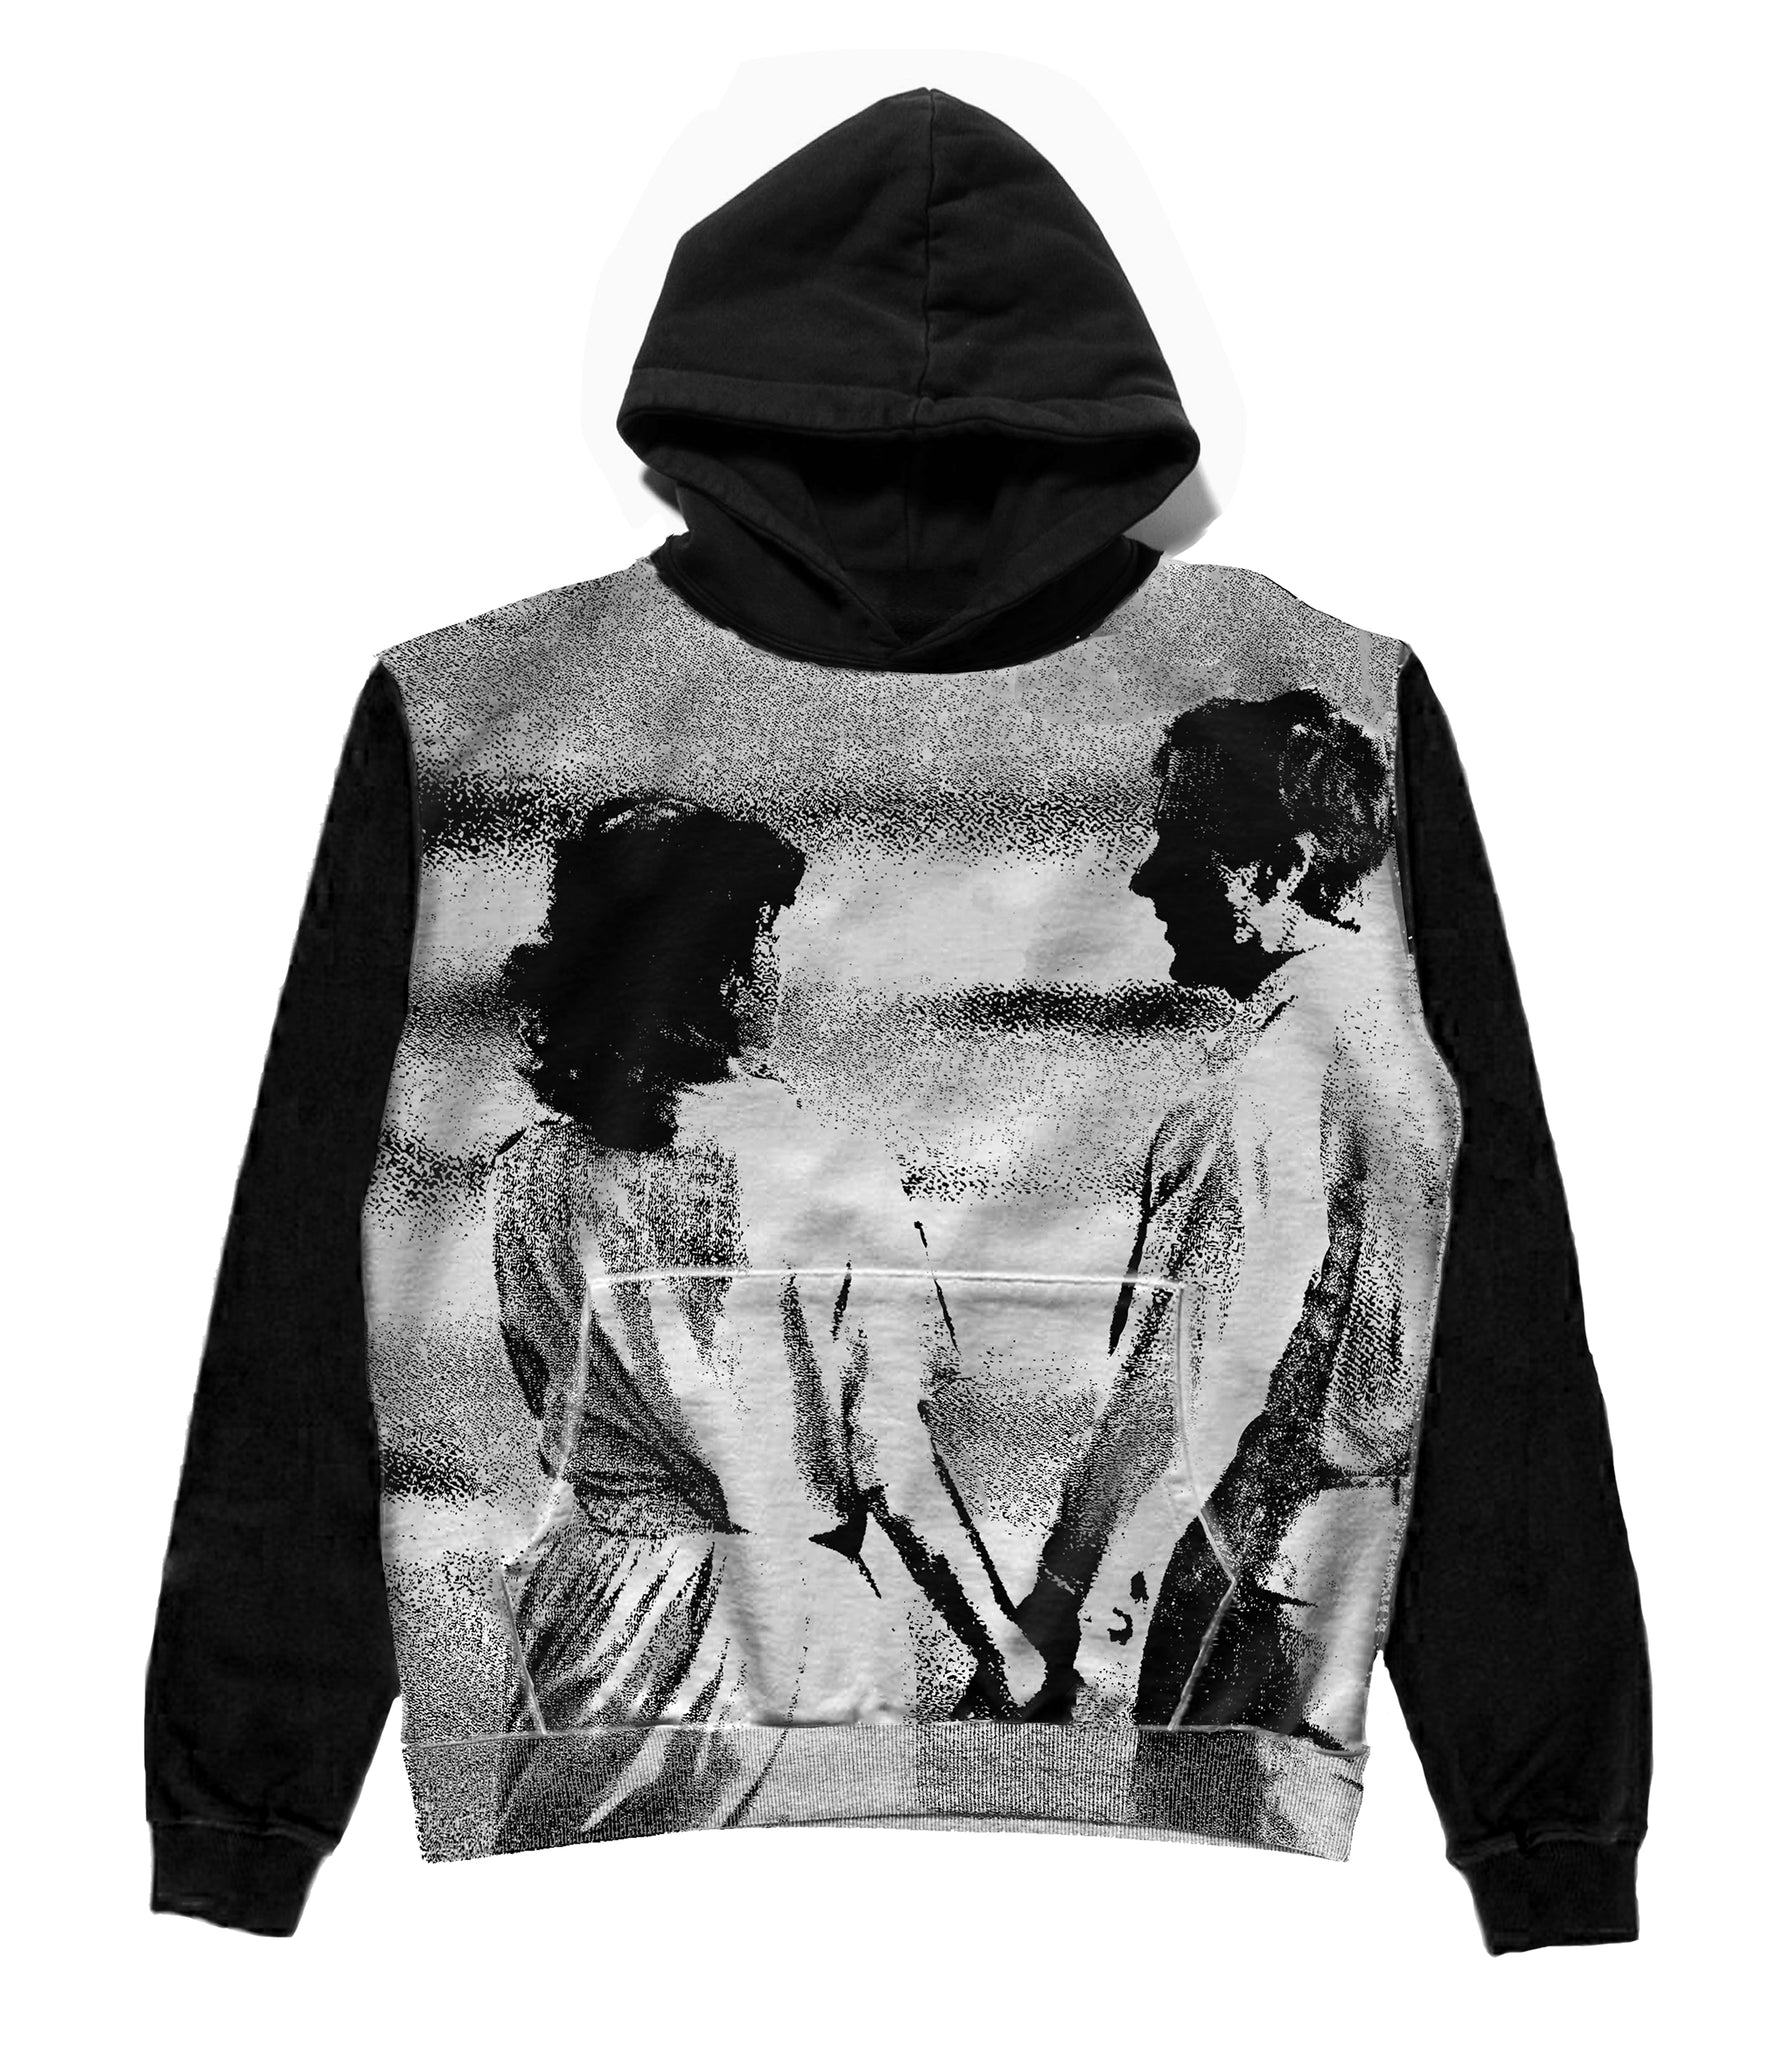 Lovers Hooded Sweatshirt